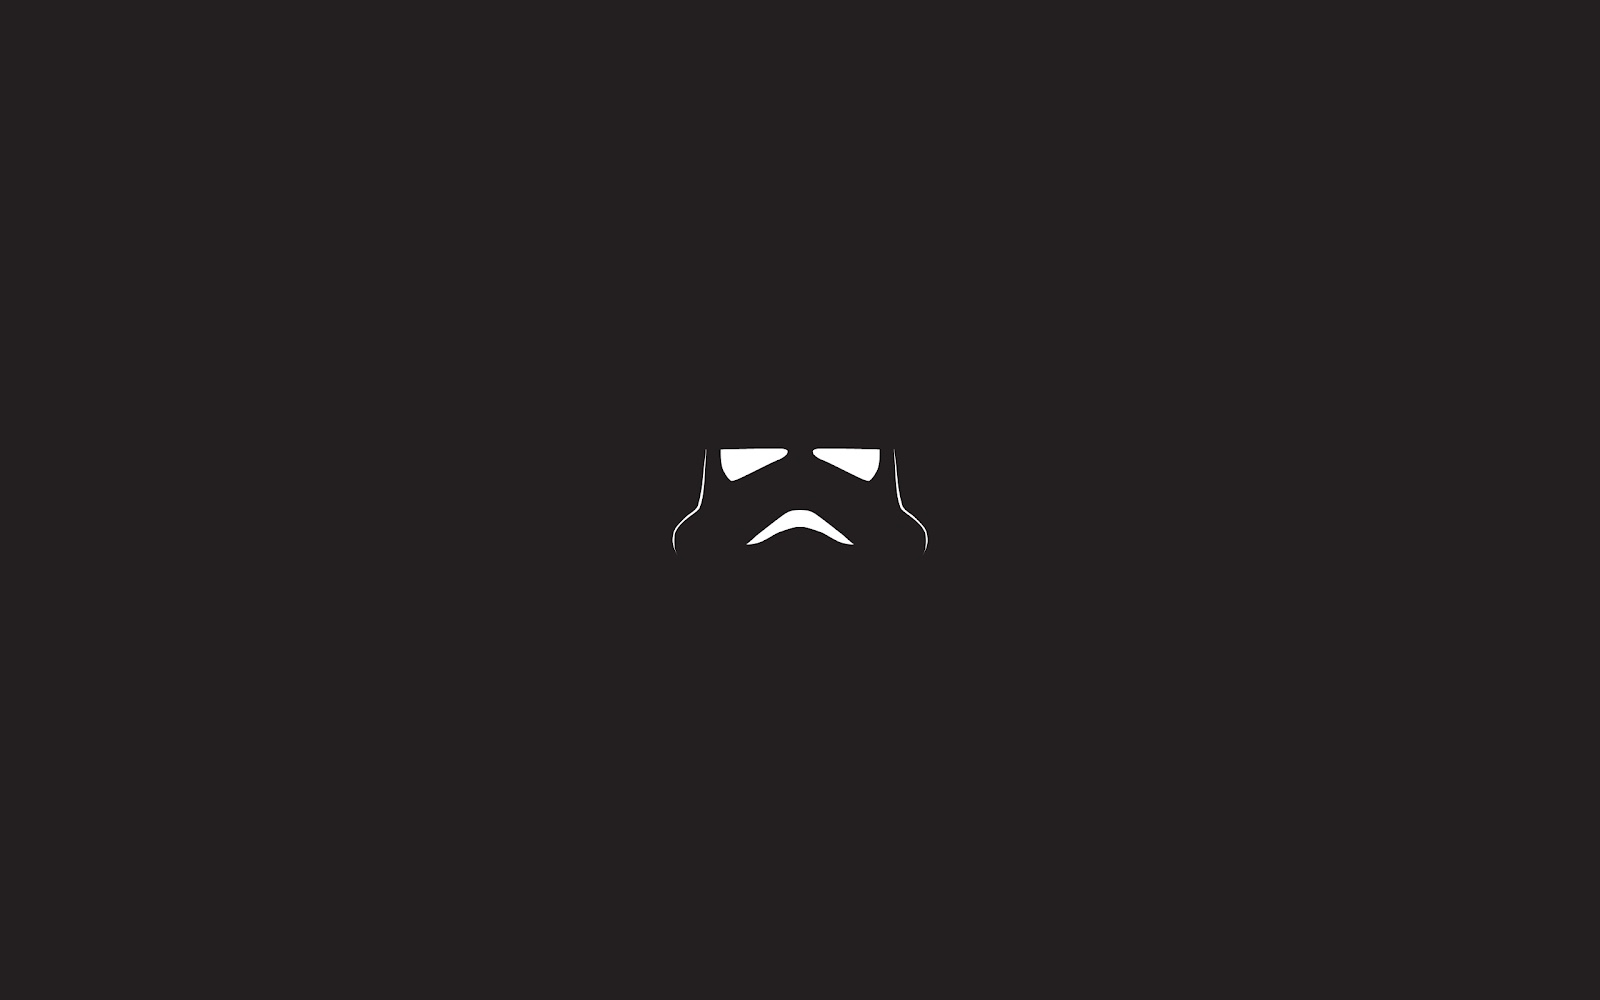 Pictures: Cool Minimalist Wallpapers HD